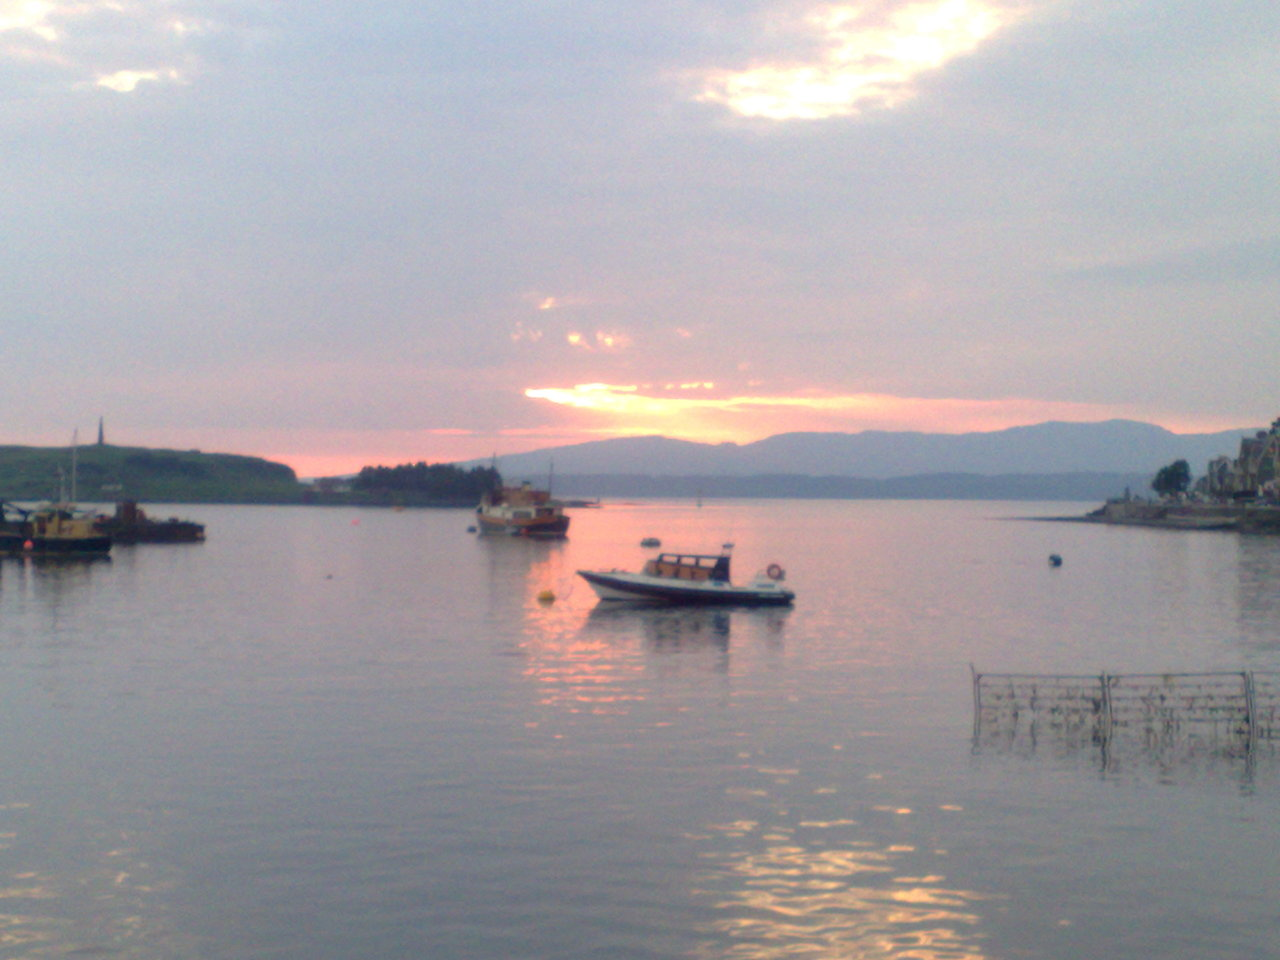 Rannochmor on her mooring in Oban Bay